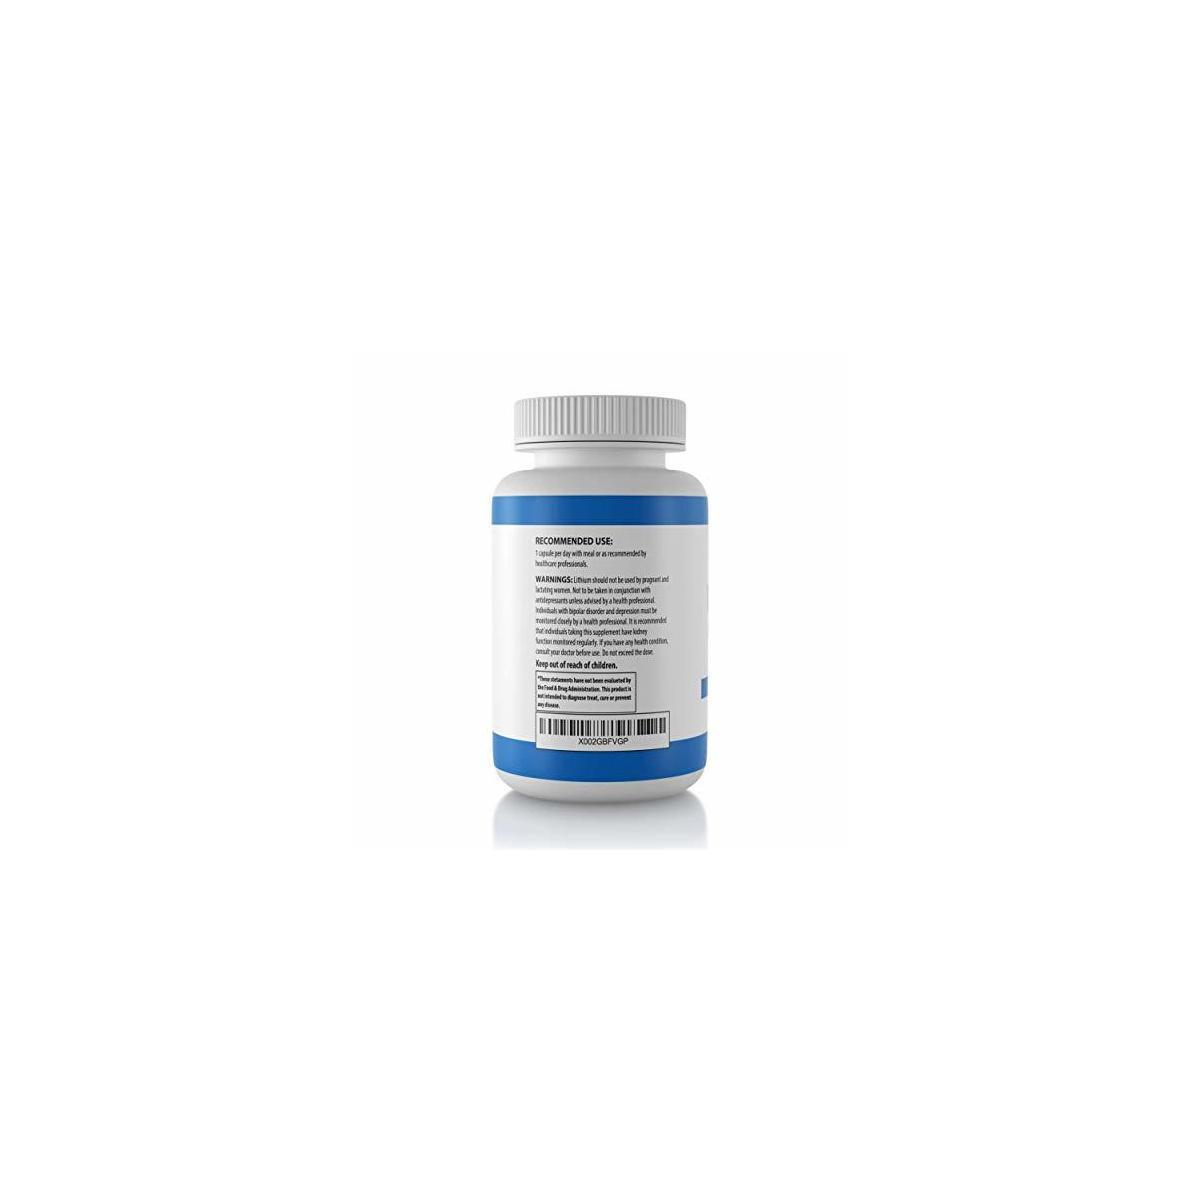 Lithium Orotate Supplement 10mg